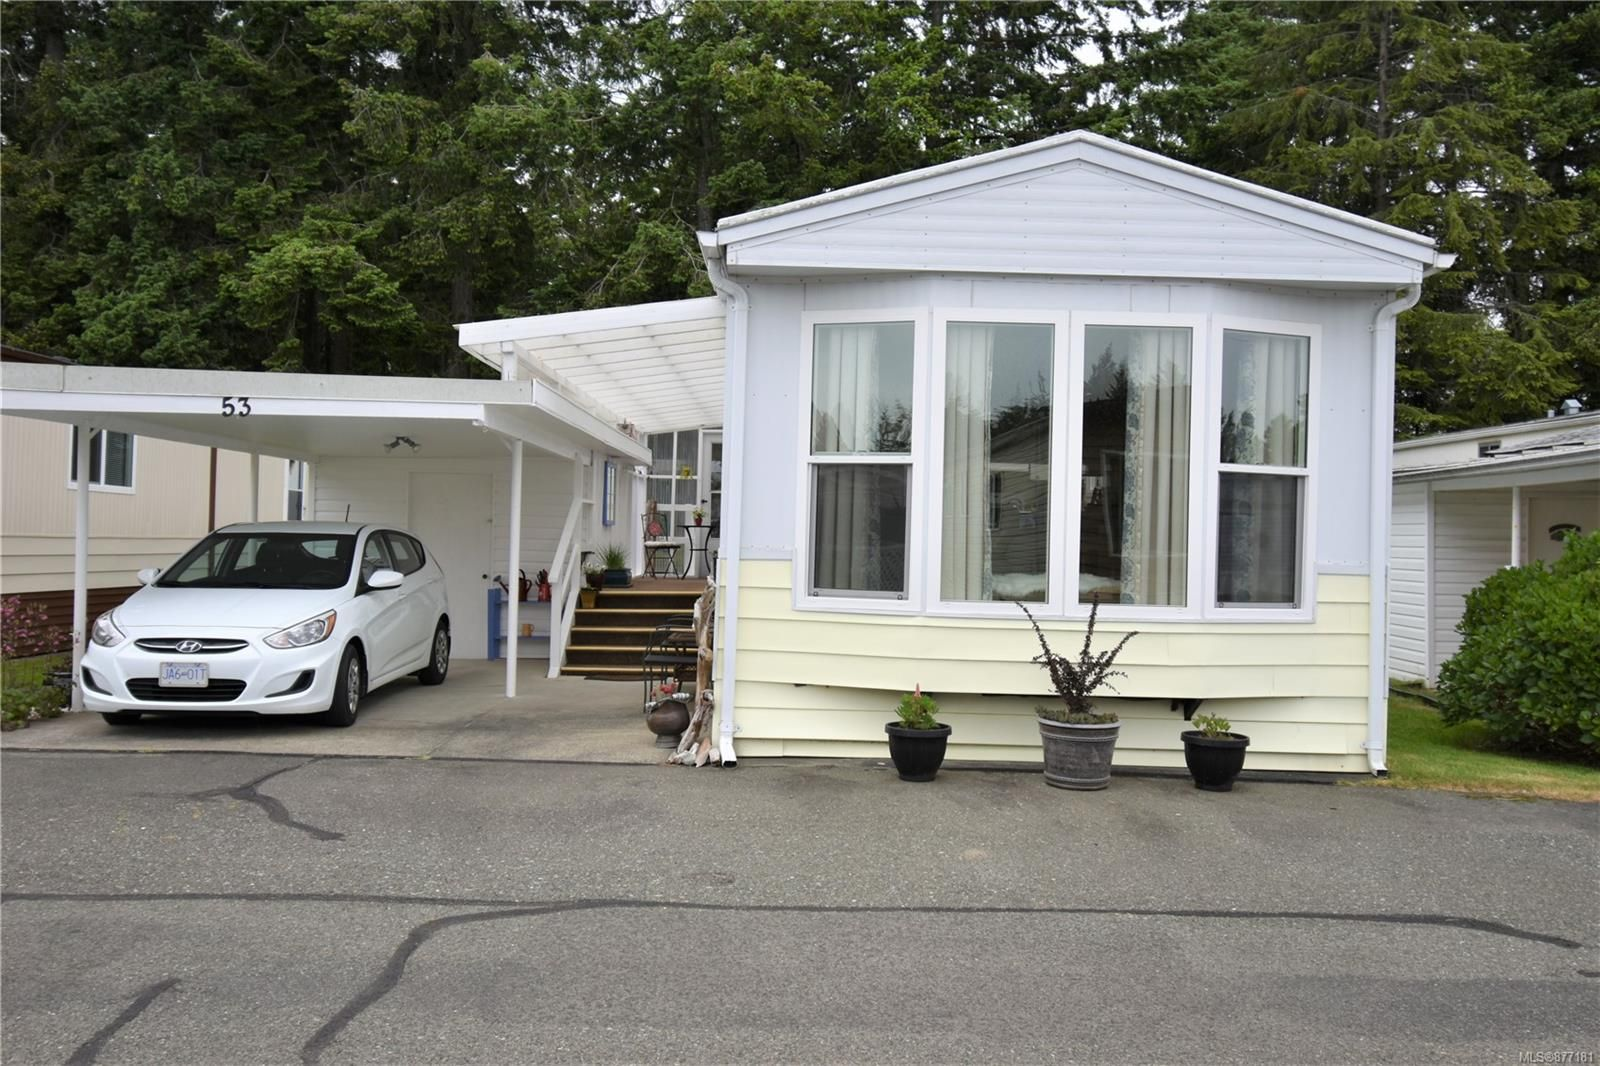 Main Photo: 53 1240 Wilkinson Rd in : CV Comox Peninsula Manufactured Home for sale (Comox Valley)  : MLS®# 877181